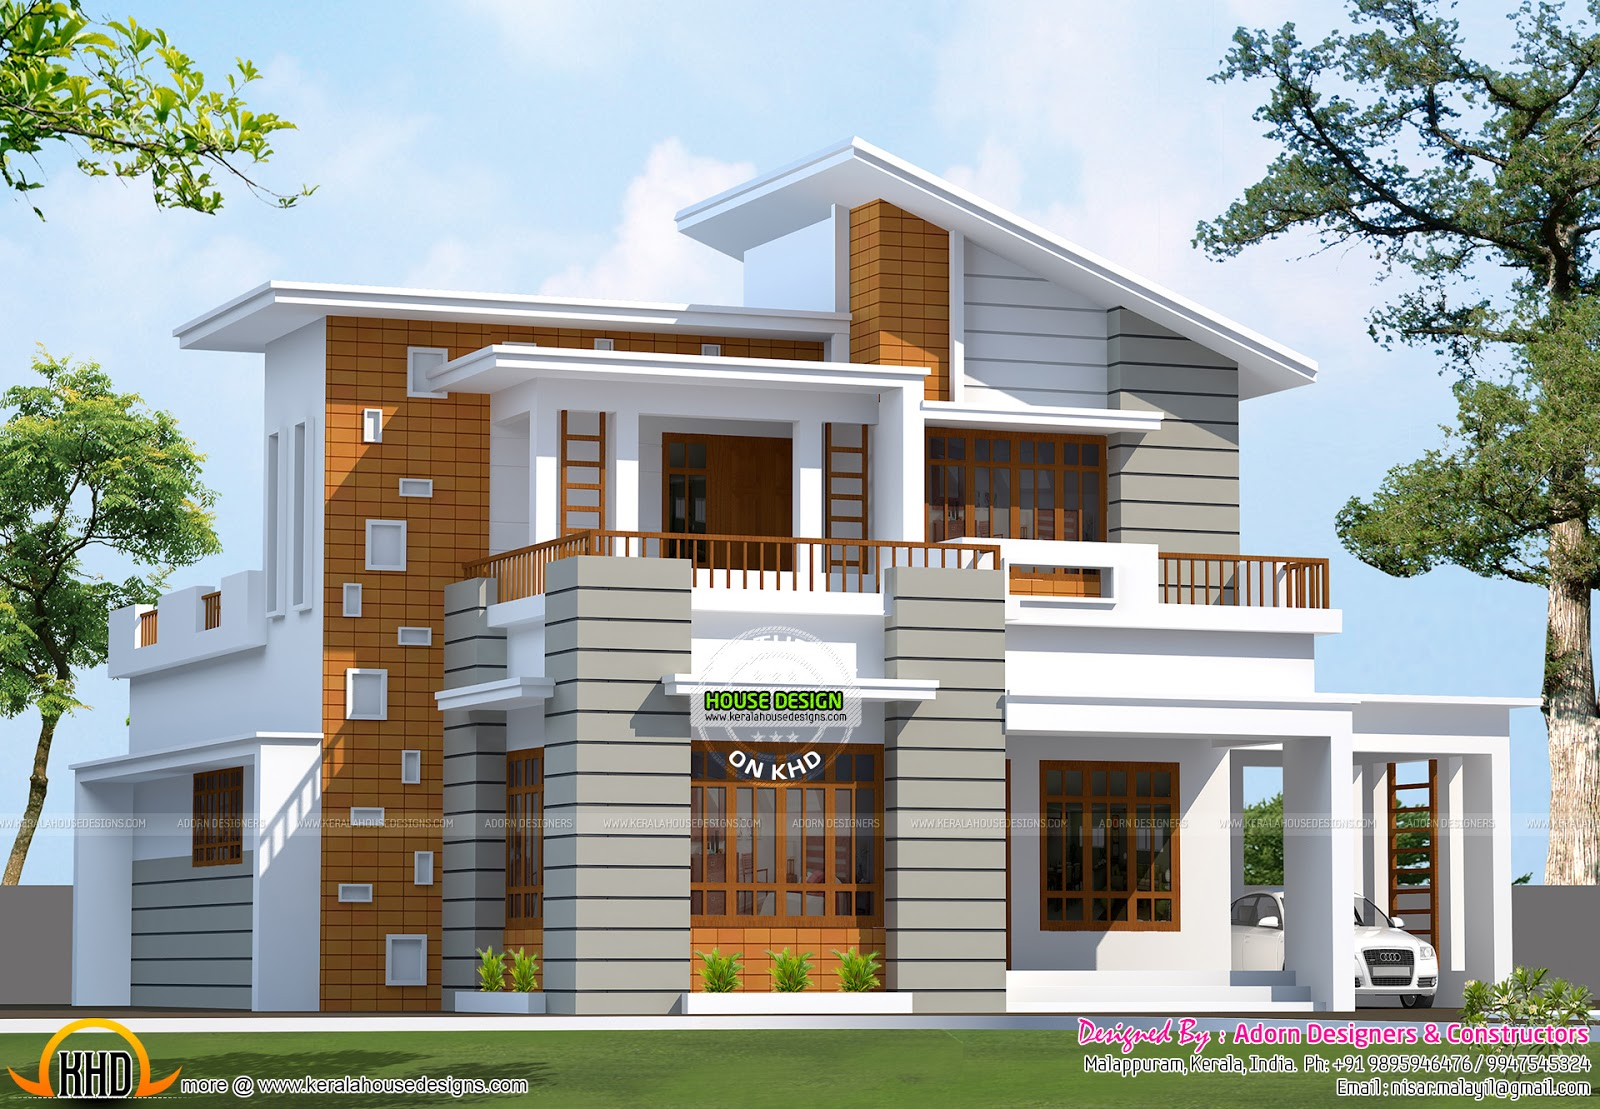 Indian house outlook design modern house for Design for house